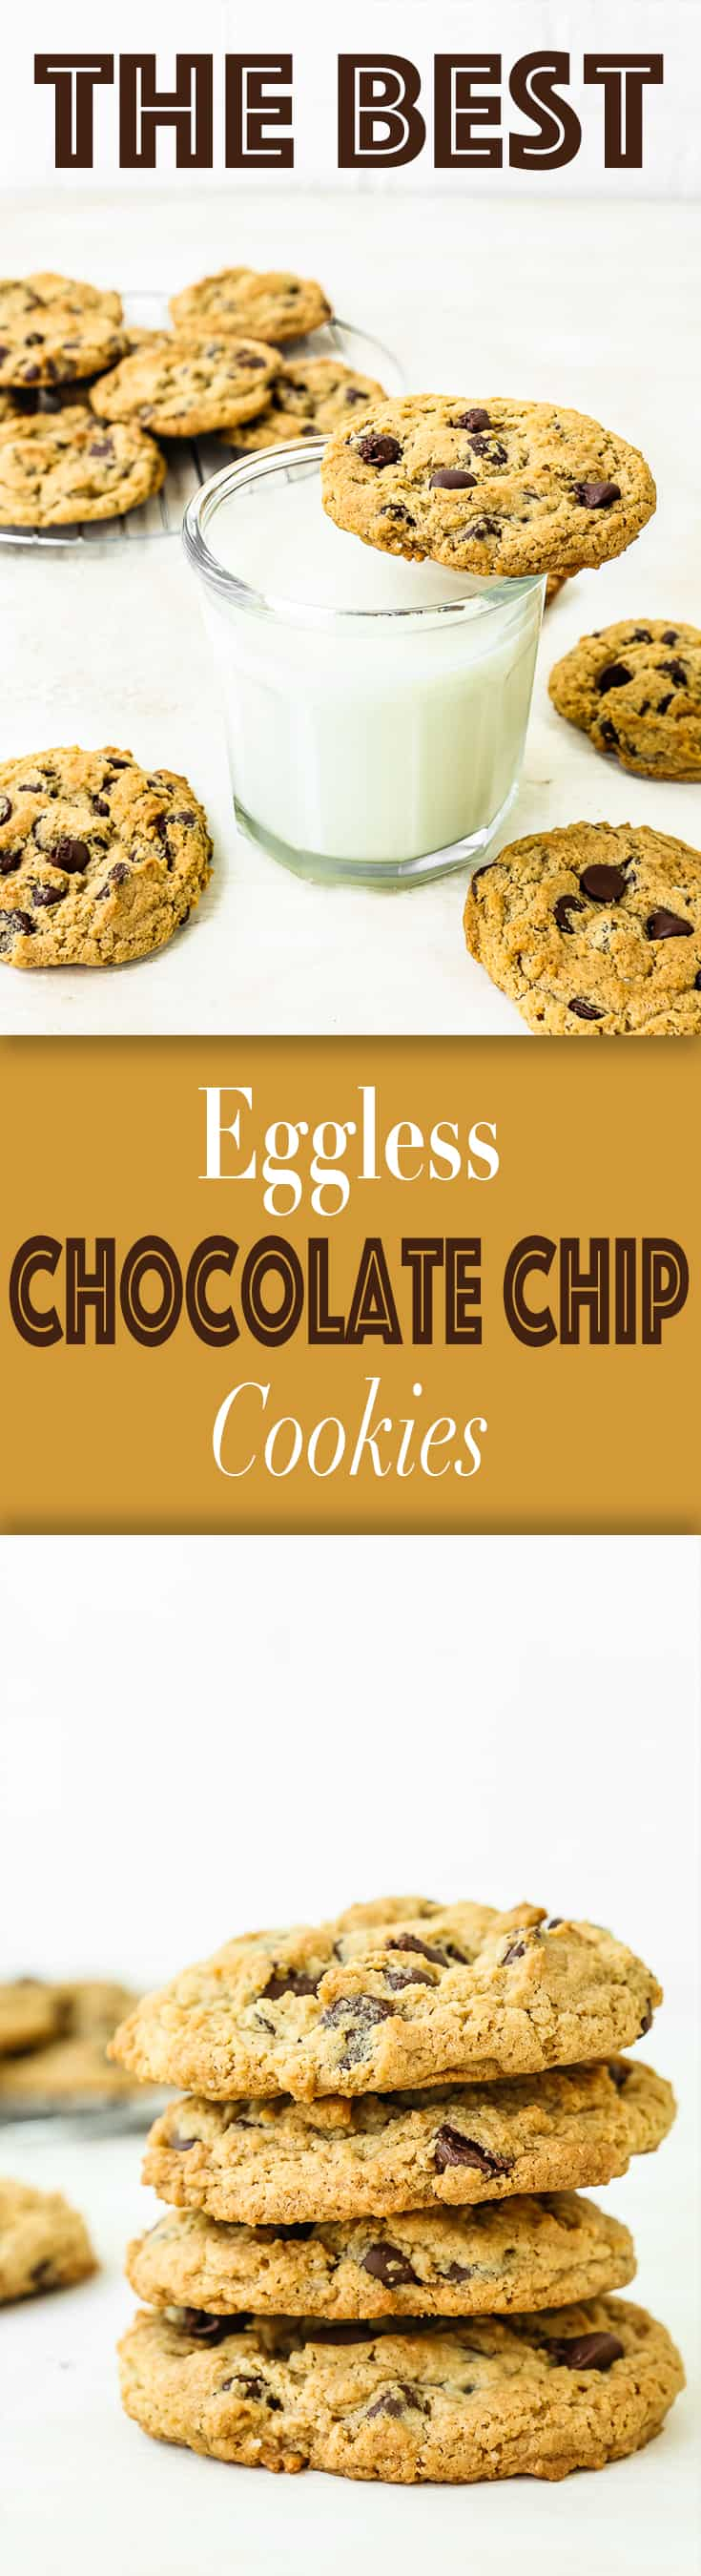 The Best Eggless Chocolate Chip Cookies - Mommy's Home Cooking